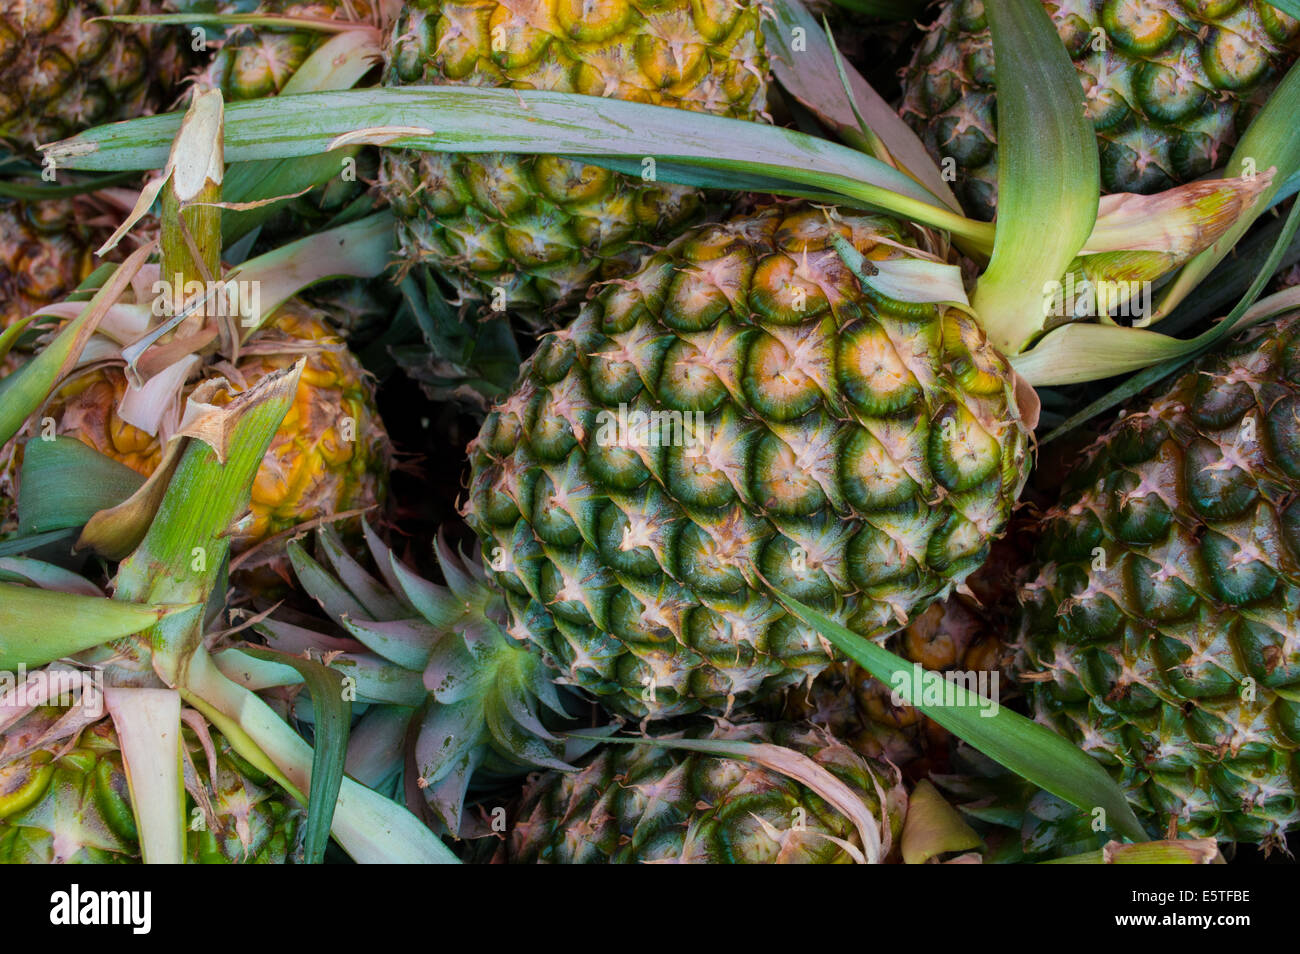 Pineapples - Stock Image